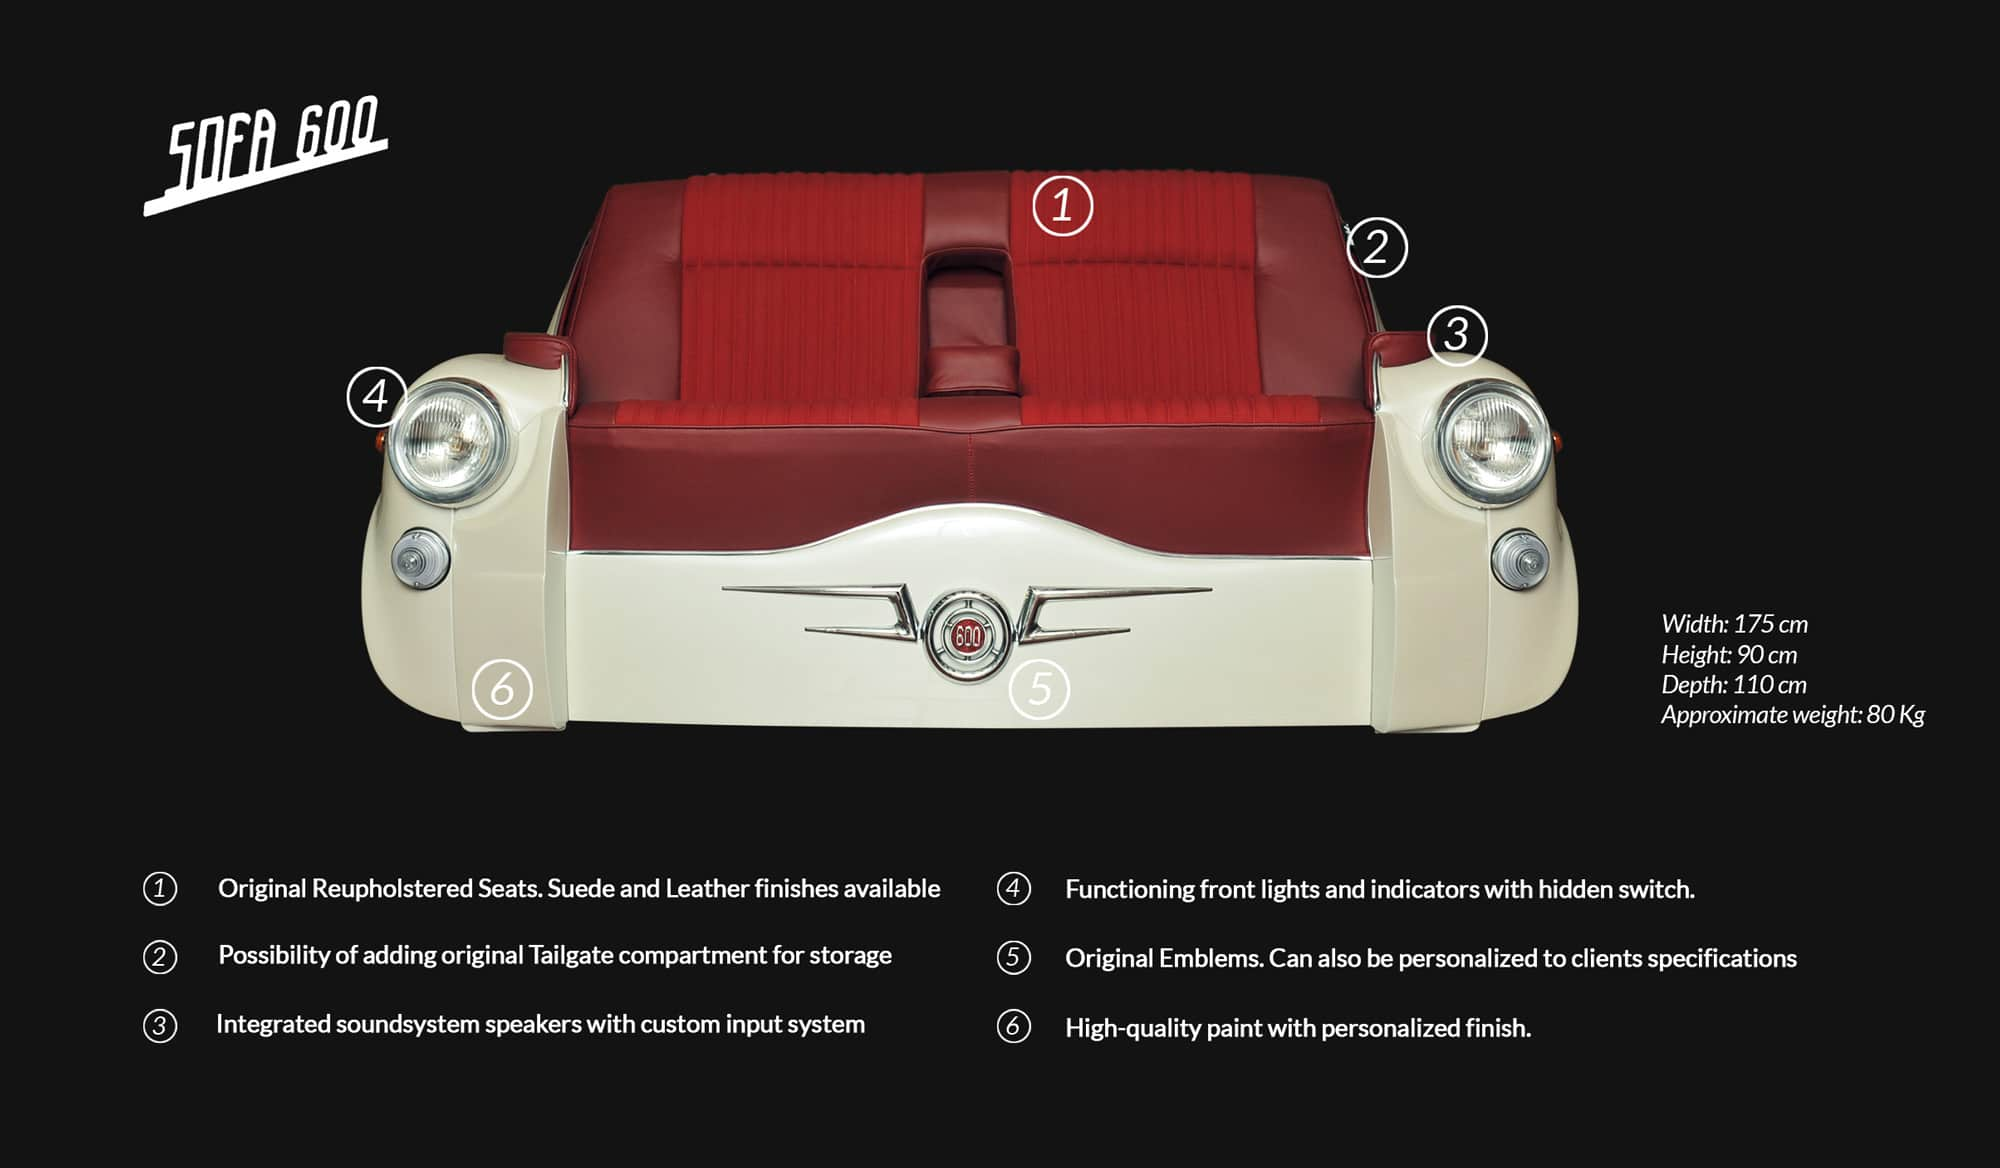 Sofa 600 Technical Specifications